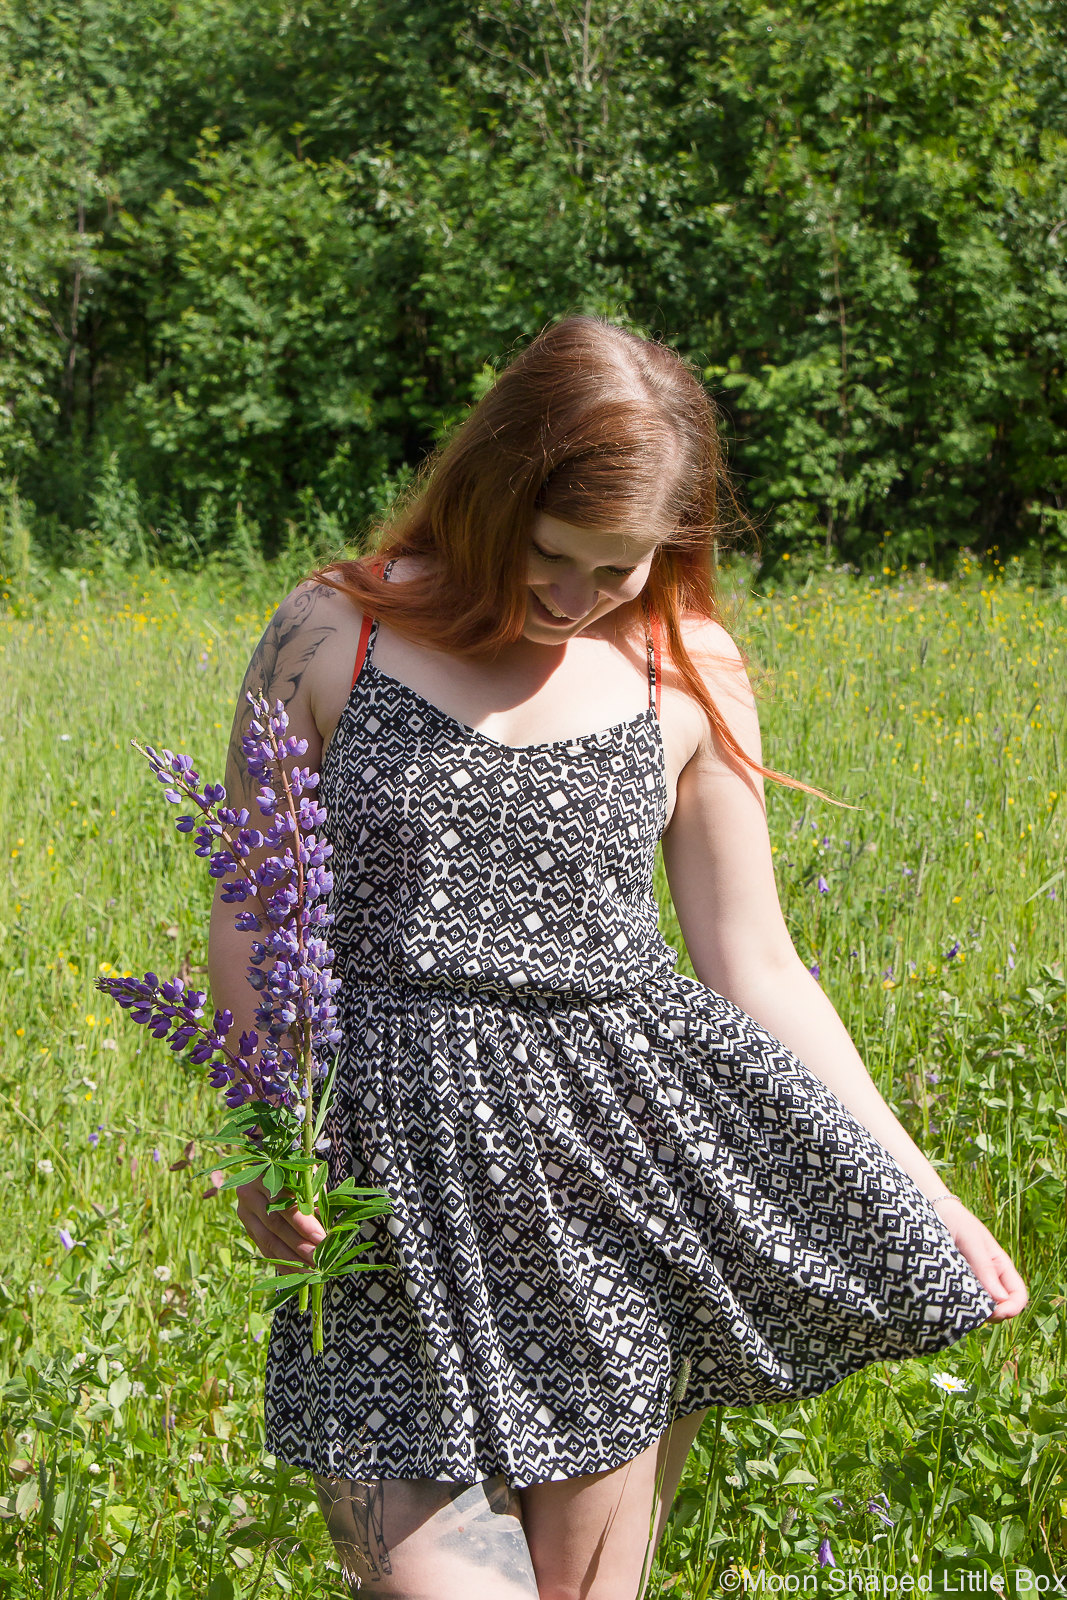 juhannus, midsummer feeling, midsummer, happy, summerdress, kesämekko